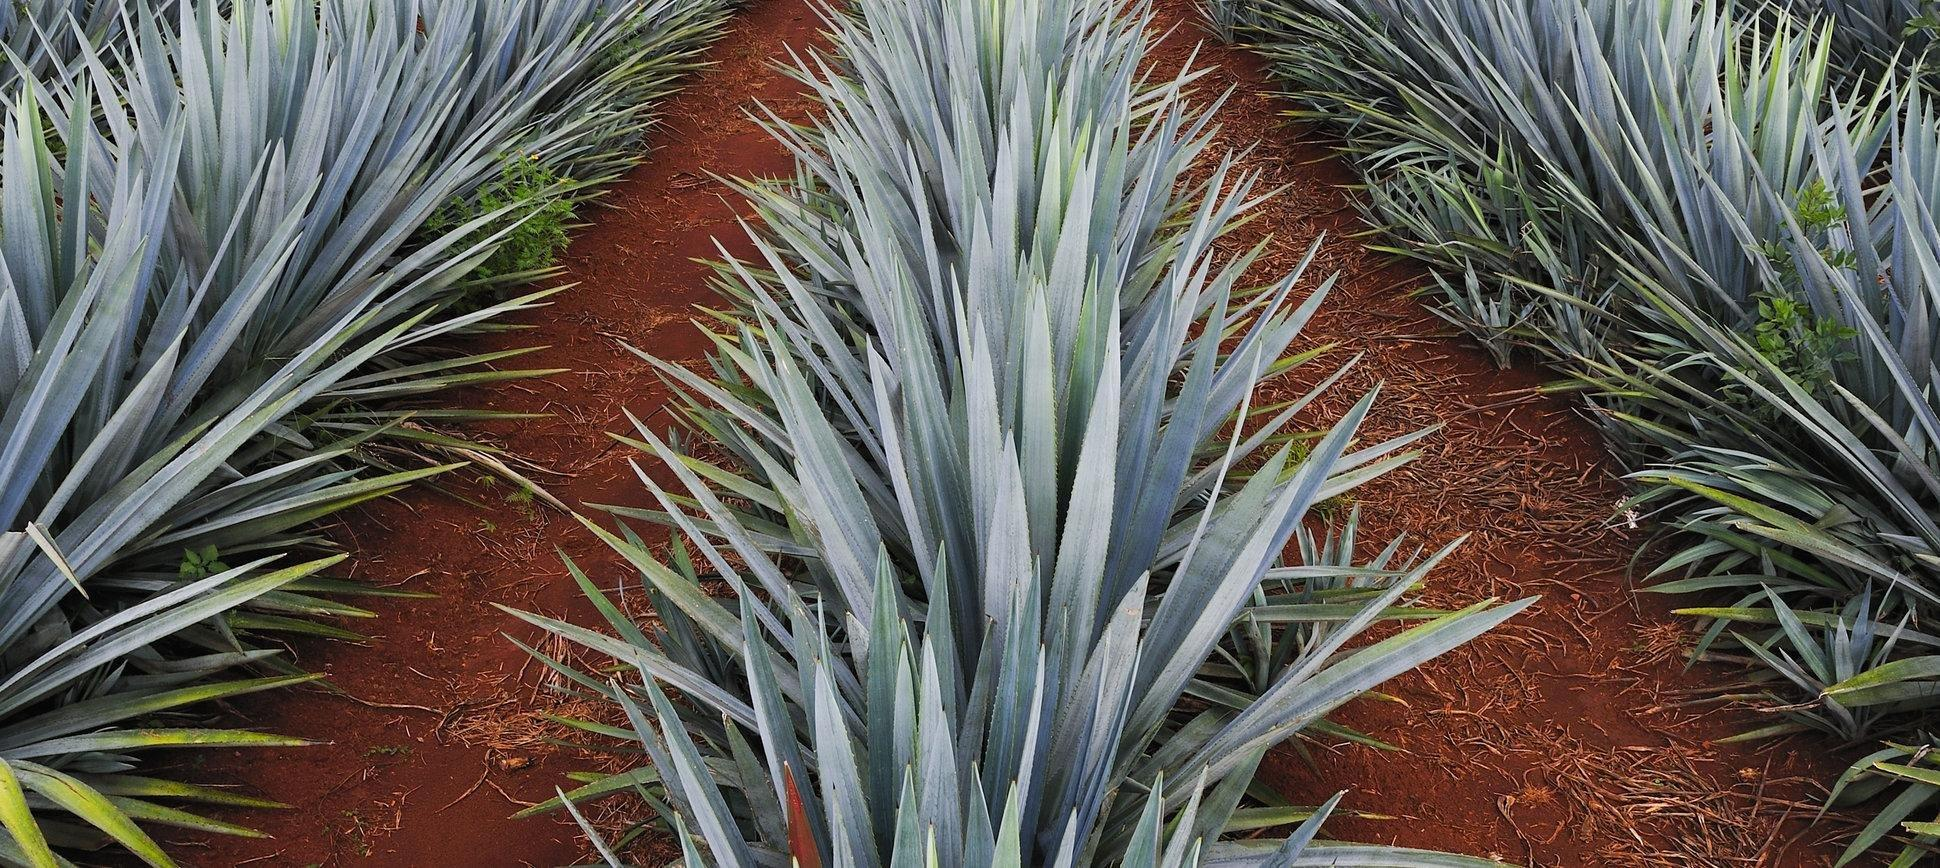 Can Diabetics Eat Agave